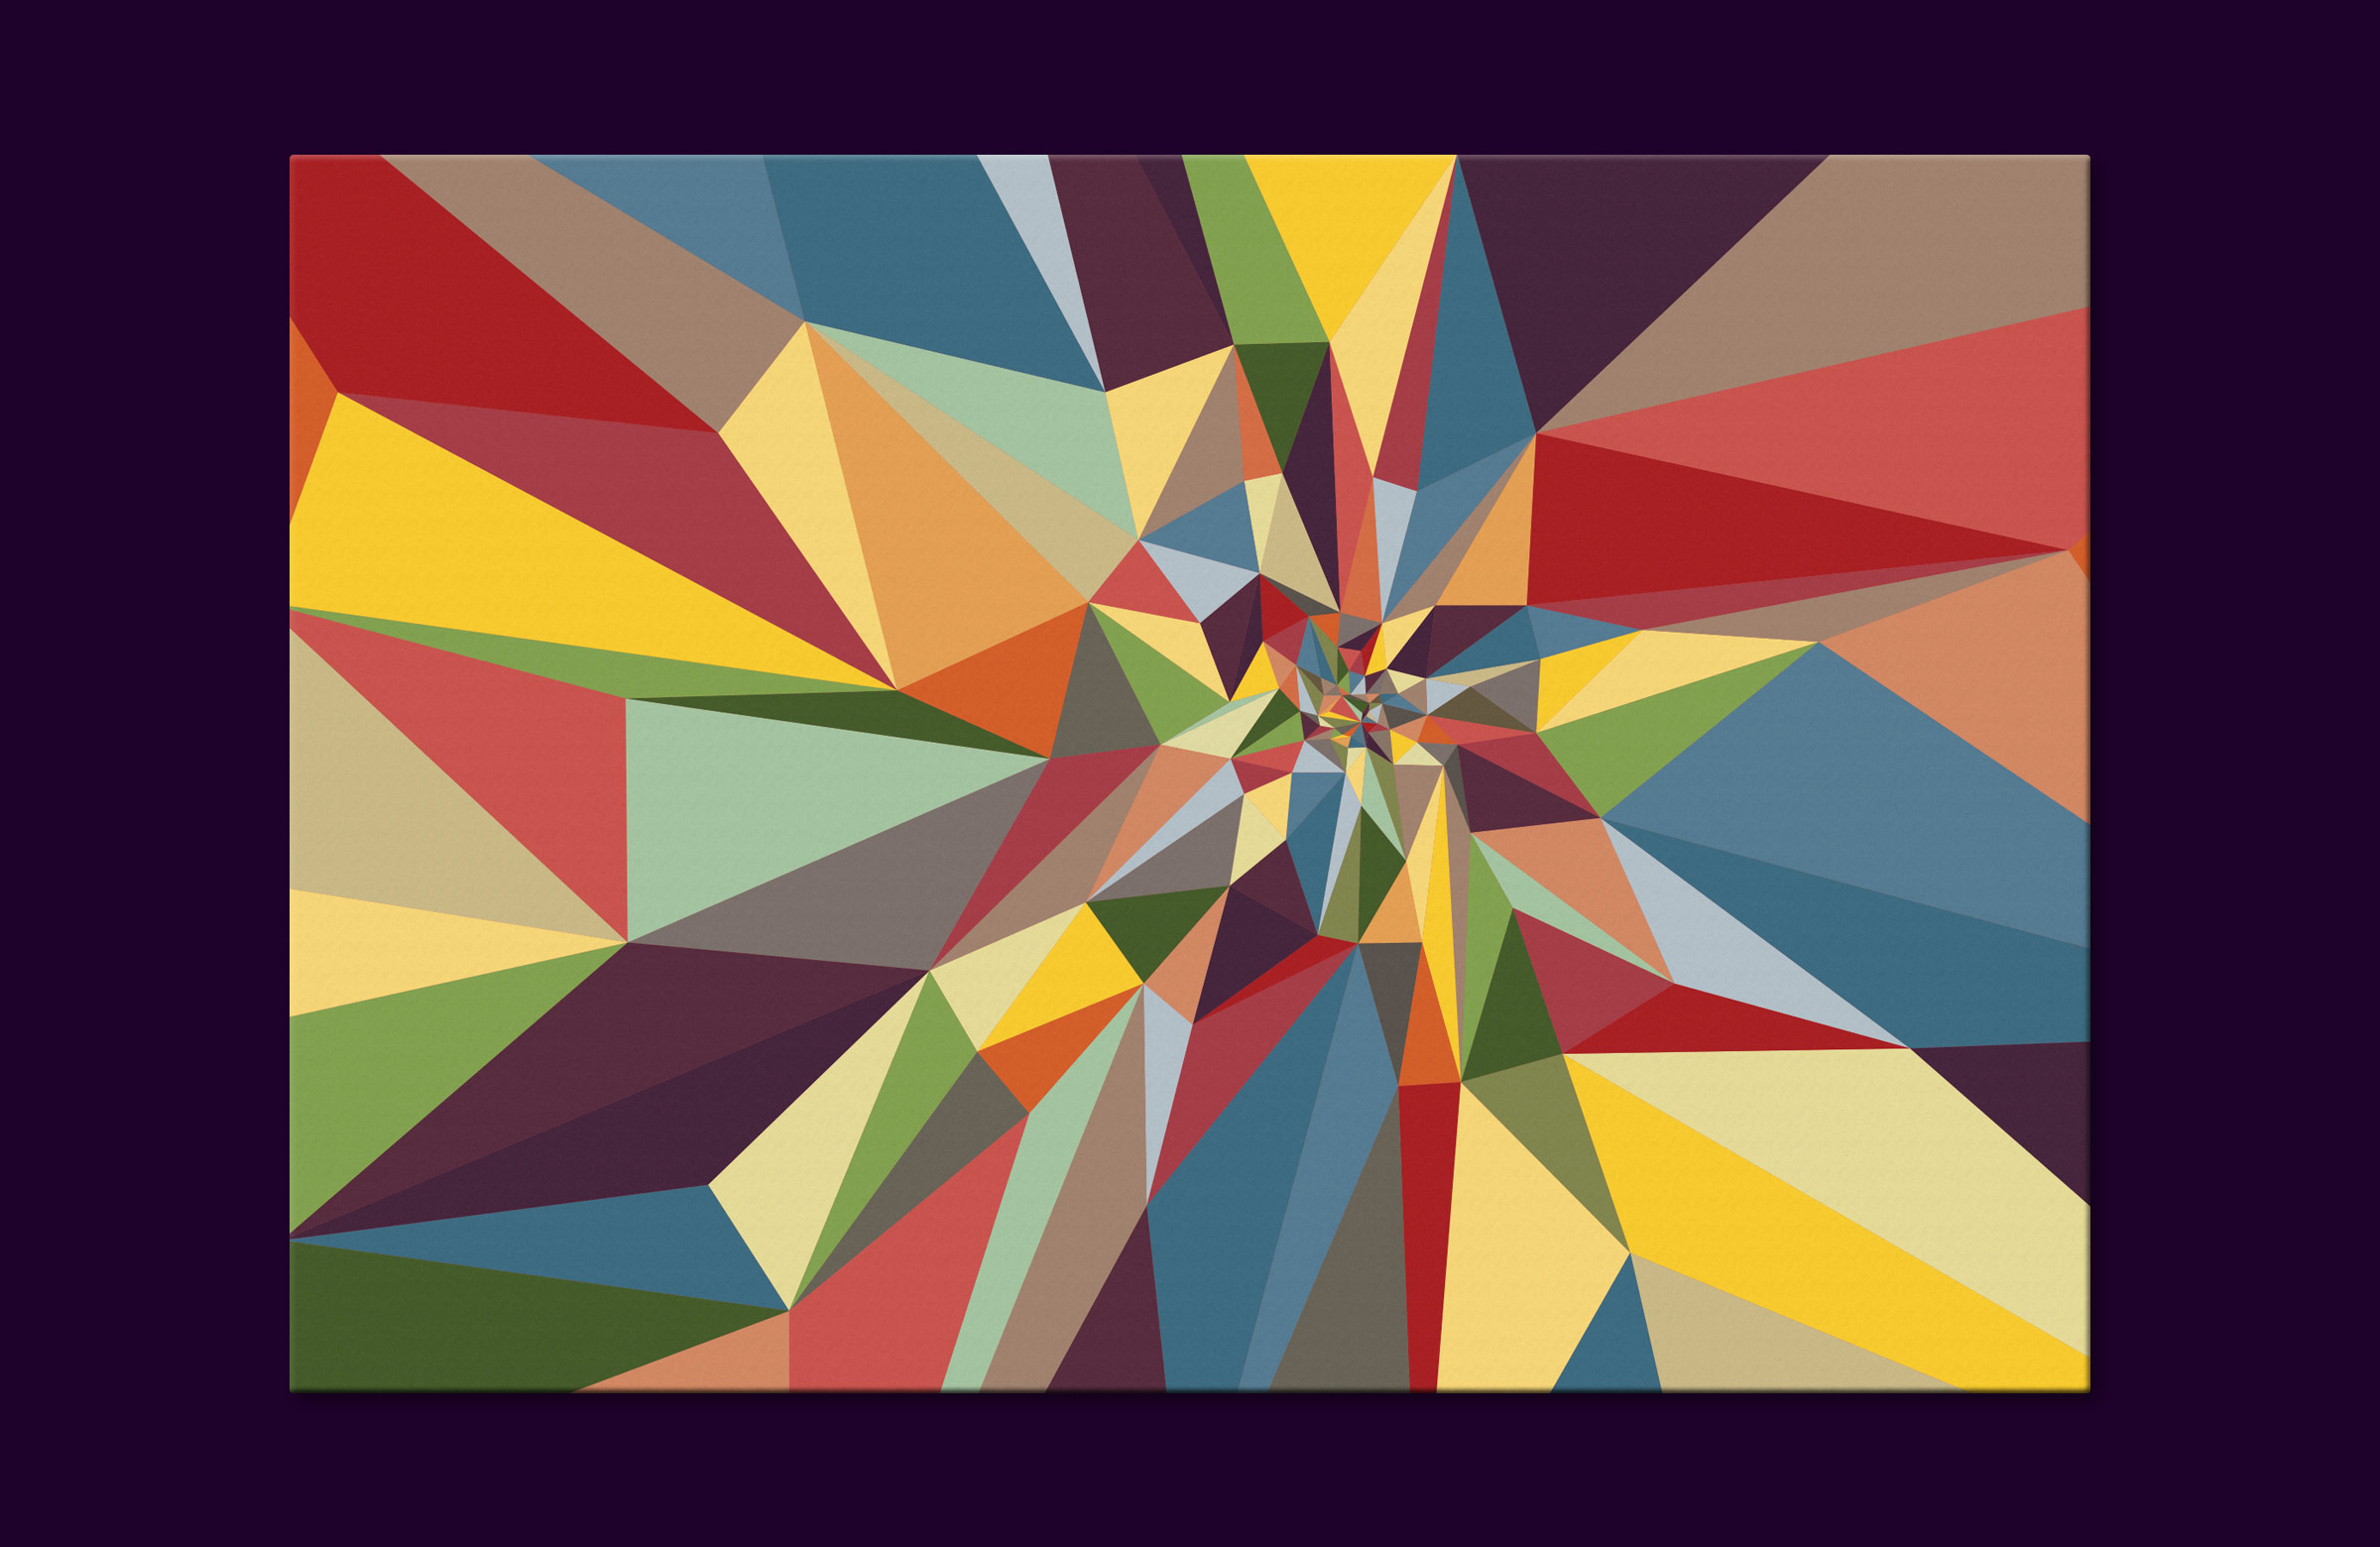 A digital print on canvas that consists of an explosion of triangles in various colors swirling from the center in a mathematical golden ratio.